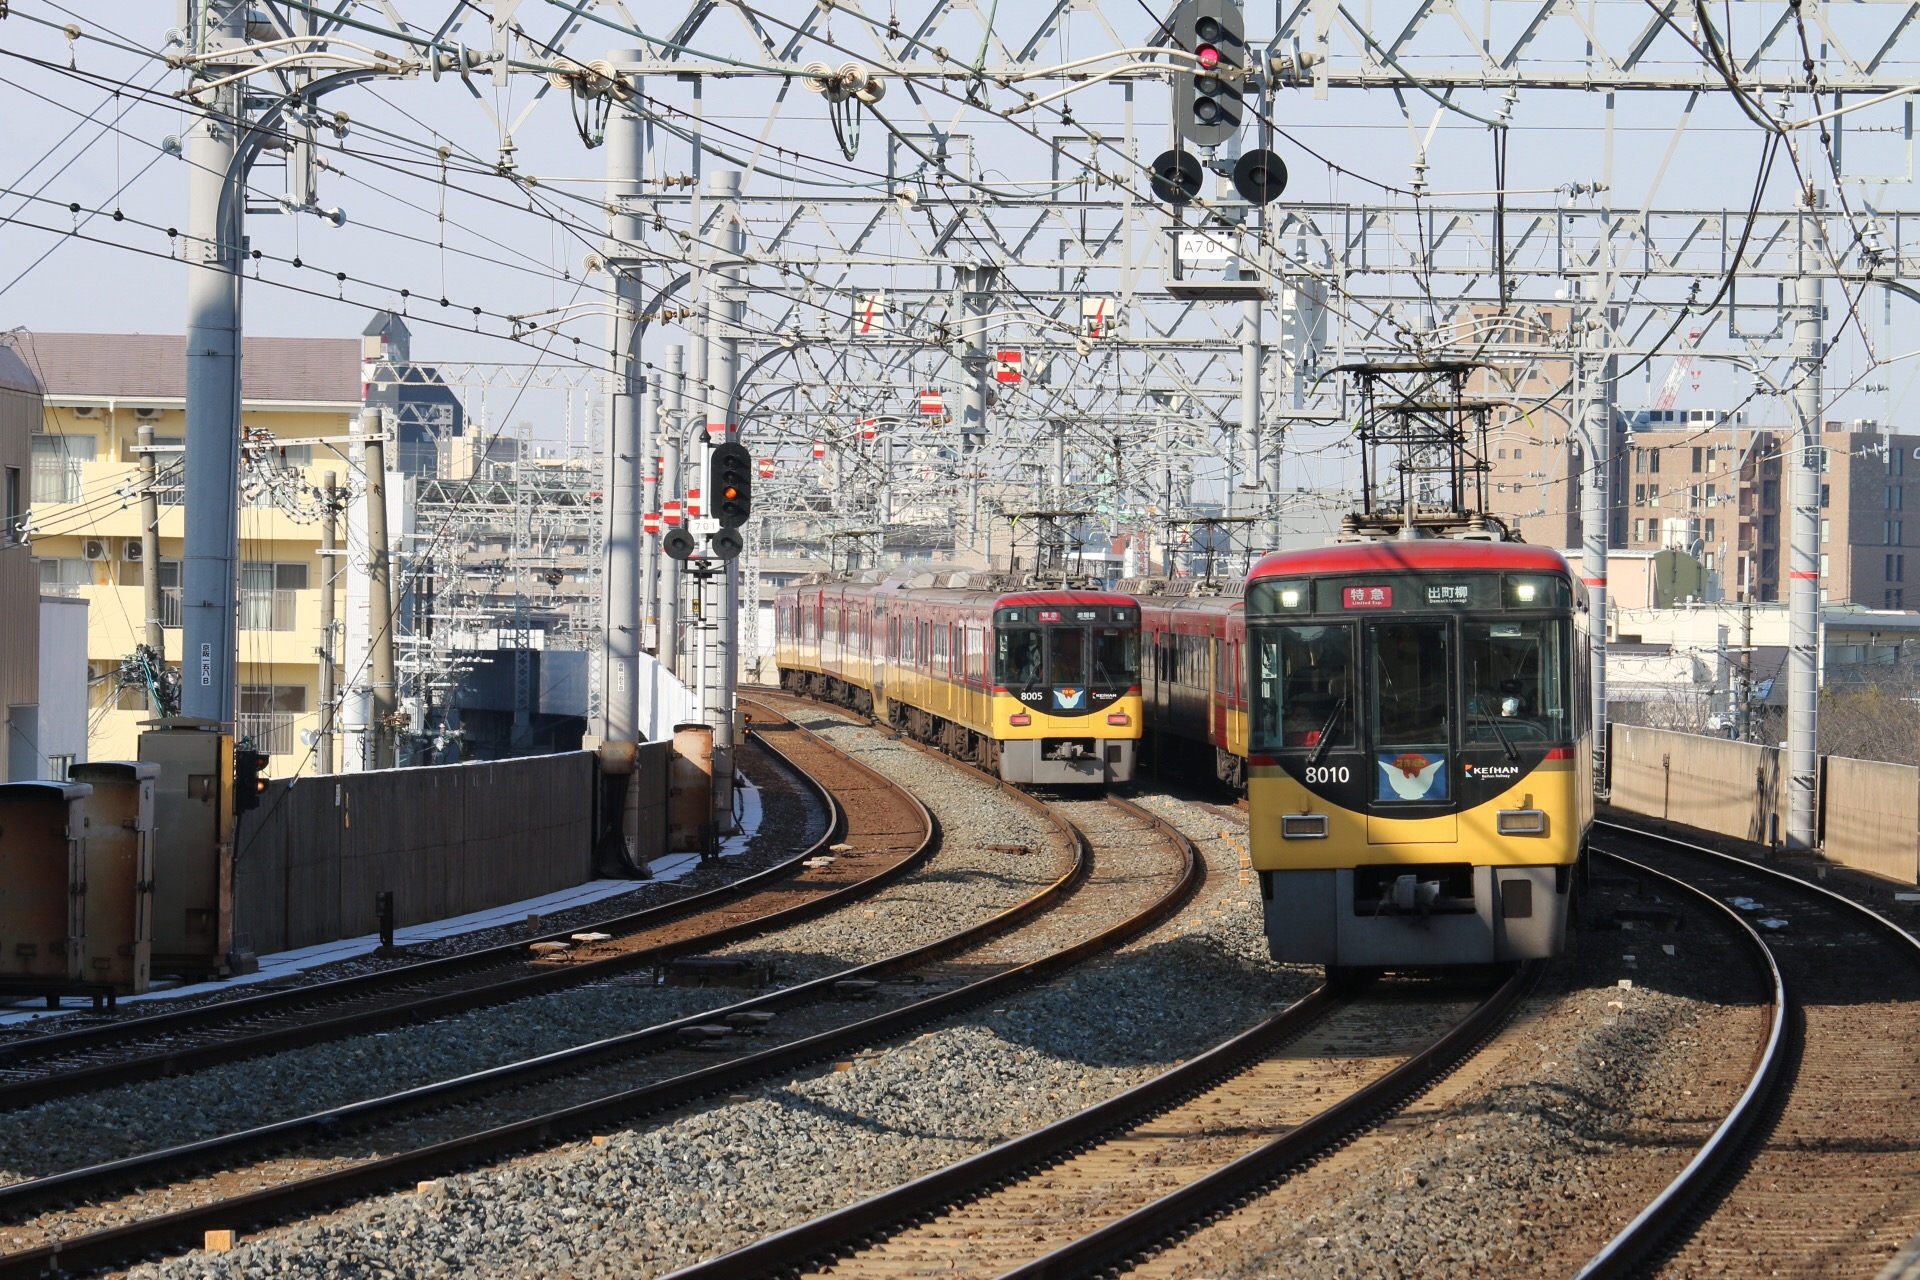 Keihan Train Line takes you directly to sightseeing destinations including Fushimi Inari Shrine